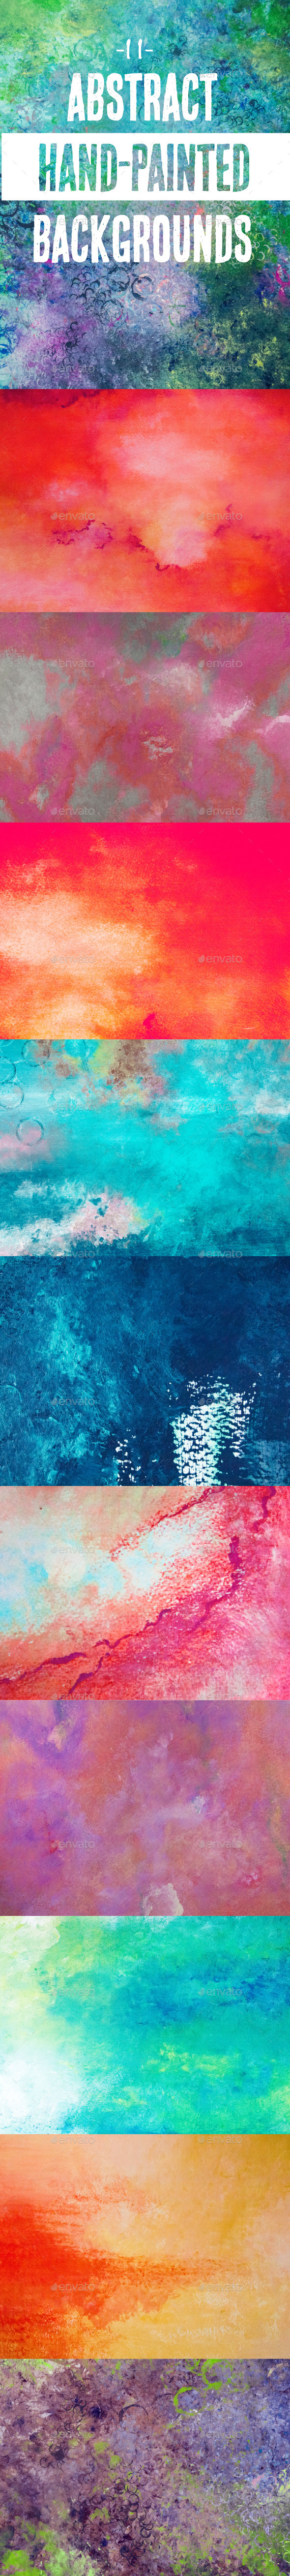 GraphicRiver 11 Abstract Hand Painted Backgrounds 11584089